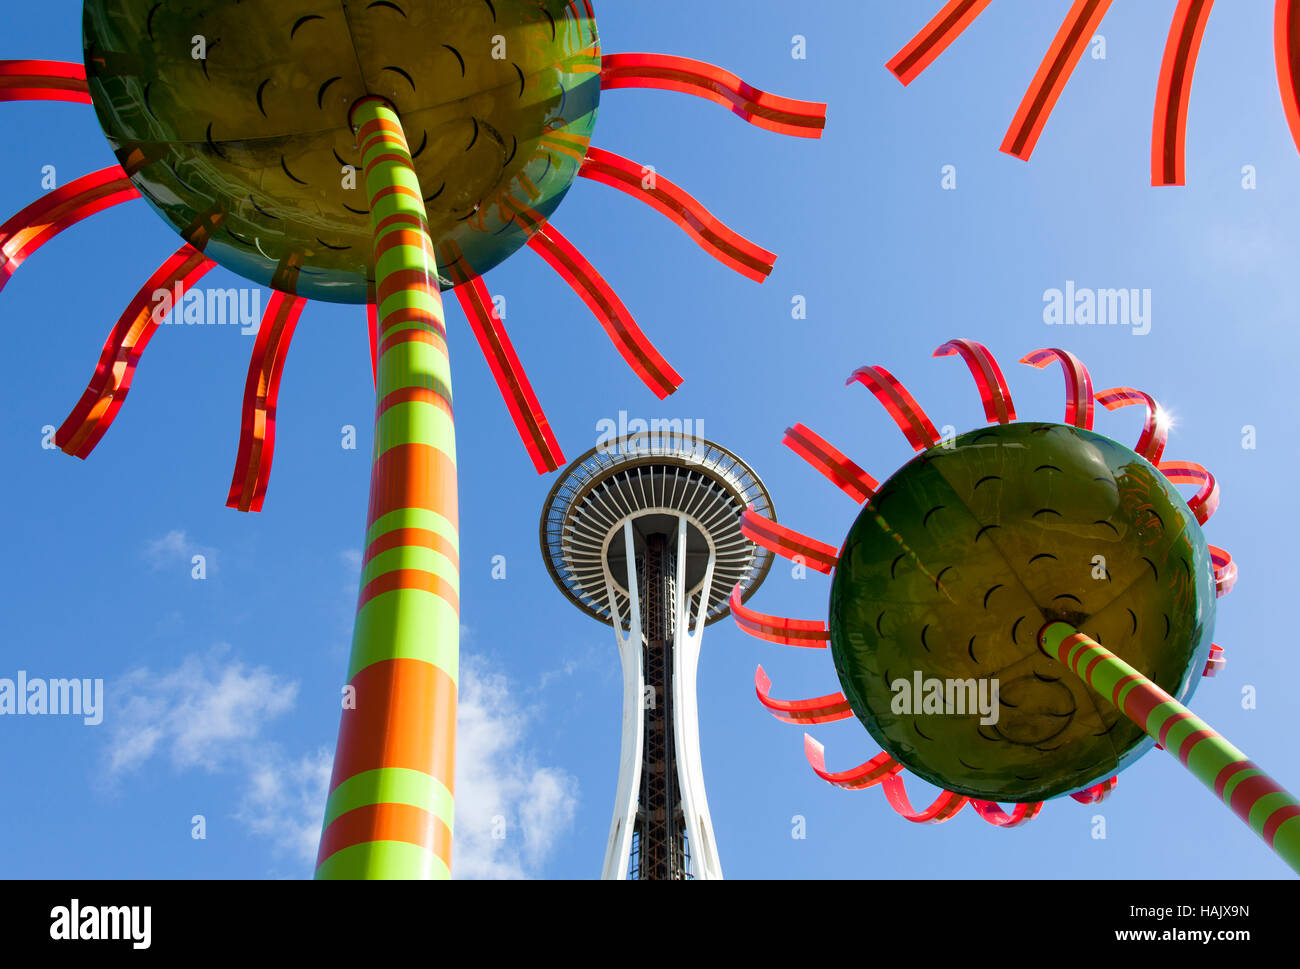 The view of a tower through artificial flowers in Seattle (Washington). - Stock Image